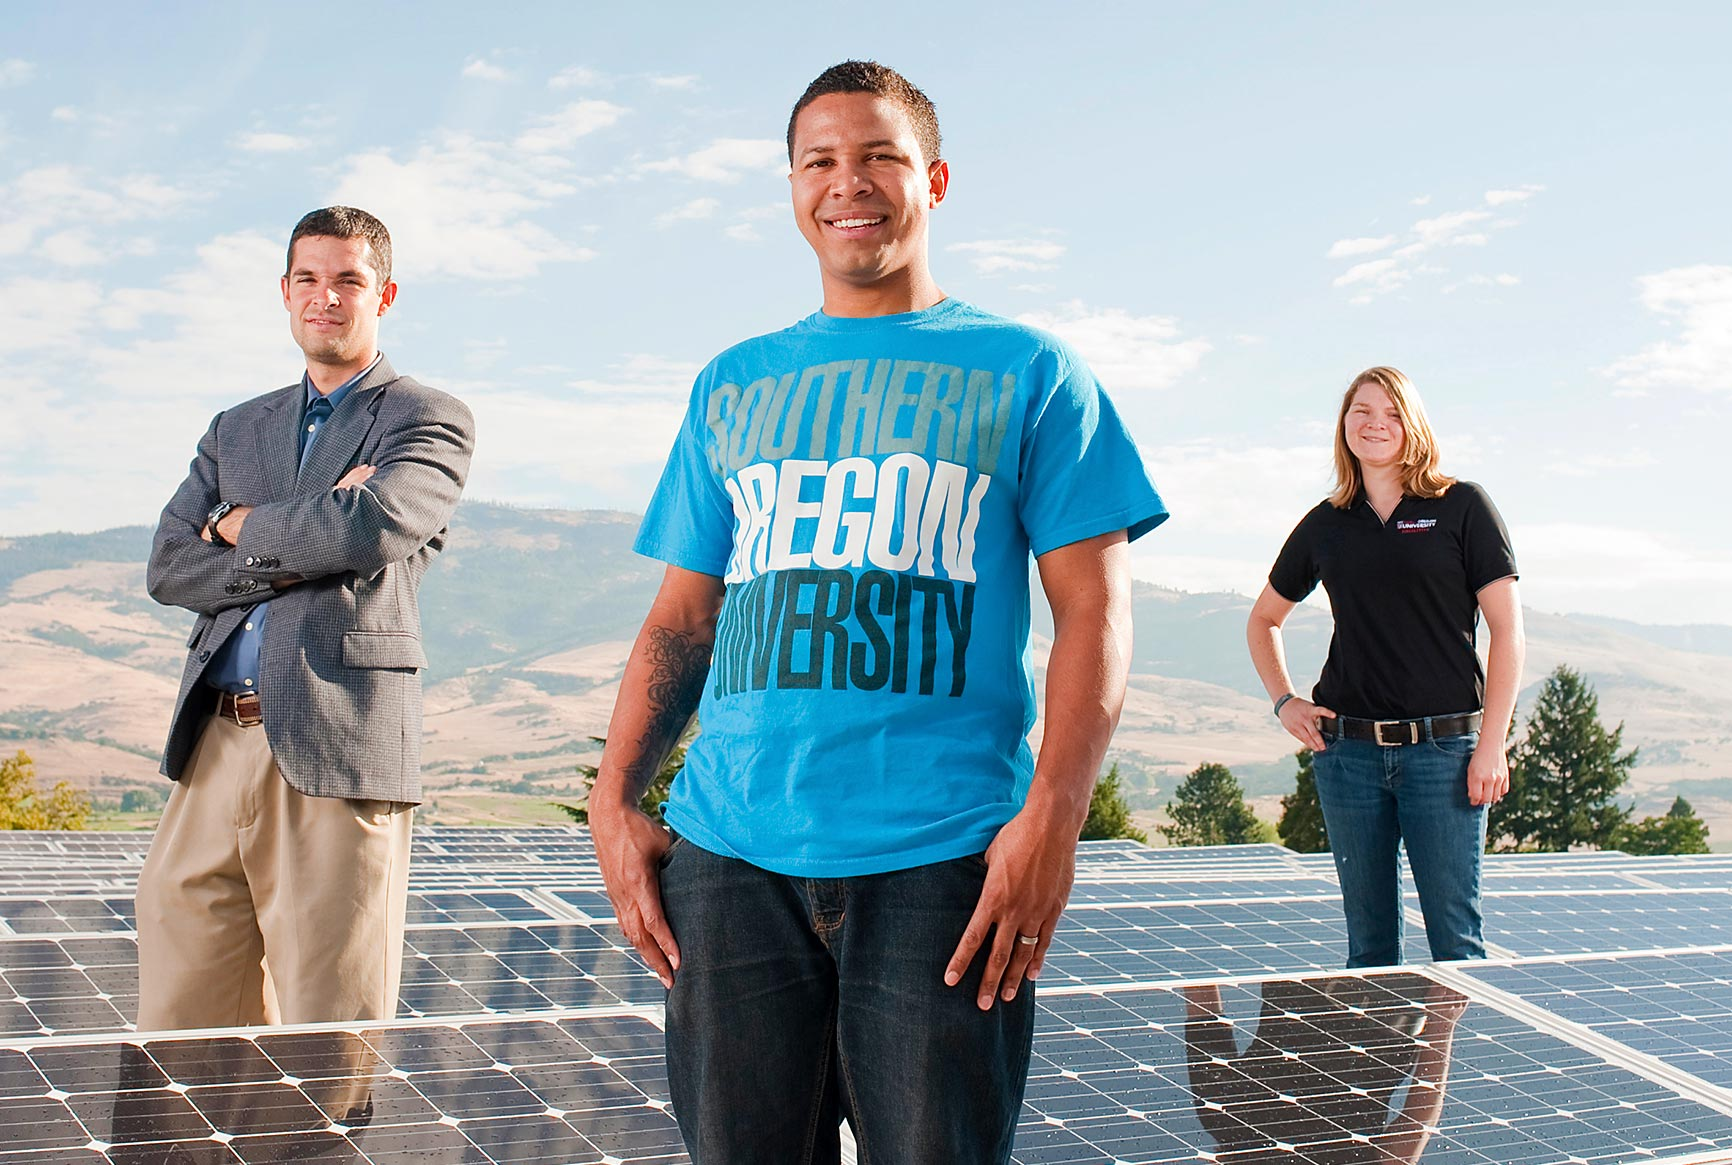 Professors and students standing in front of new solar panels